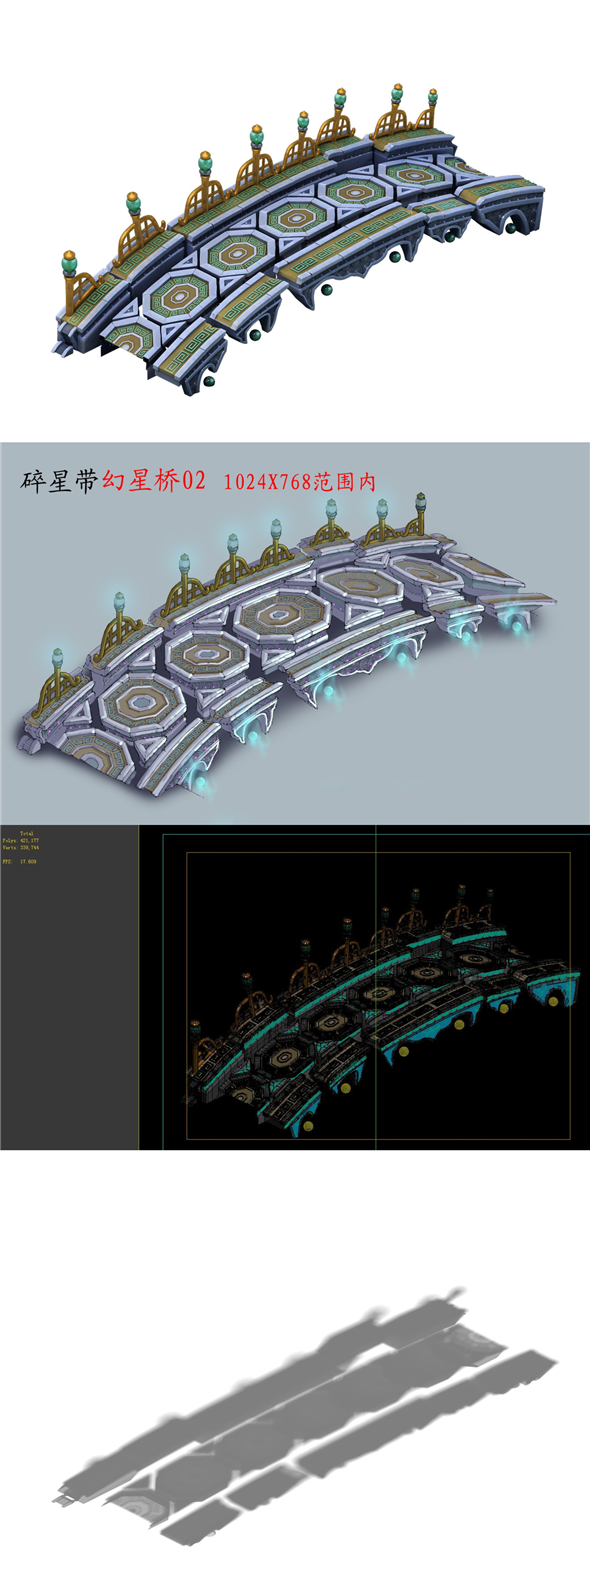 Game Model - Broken Stone Bridge Magic Star Bridge - 3DOcean Item for Sale